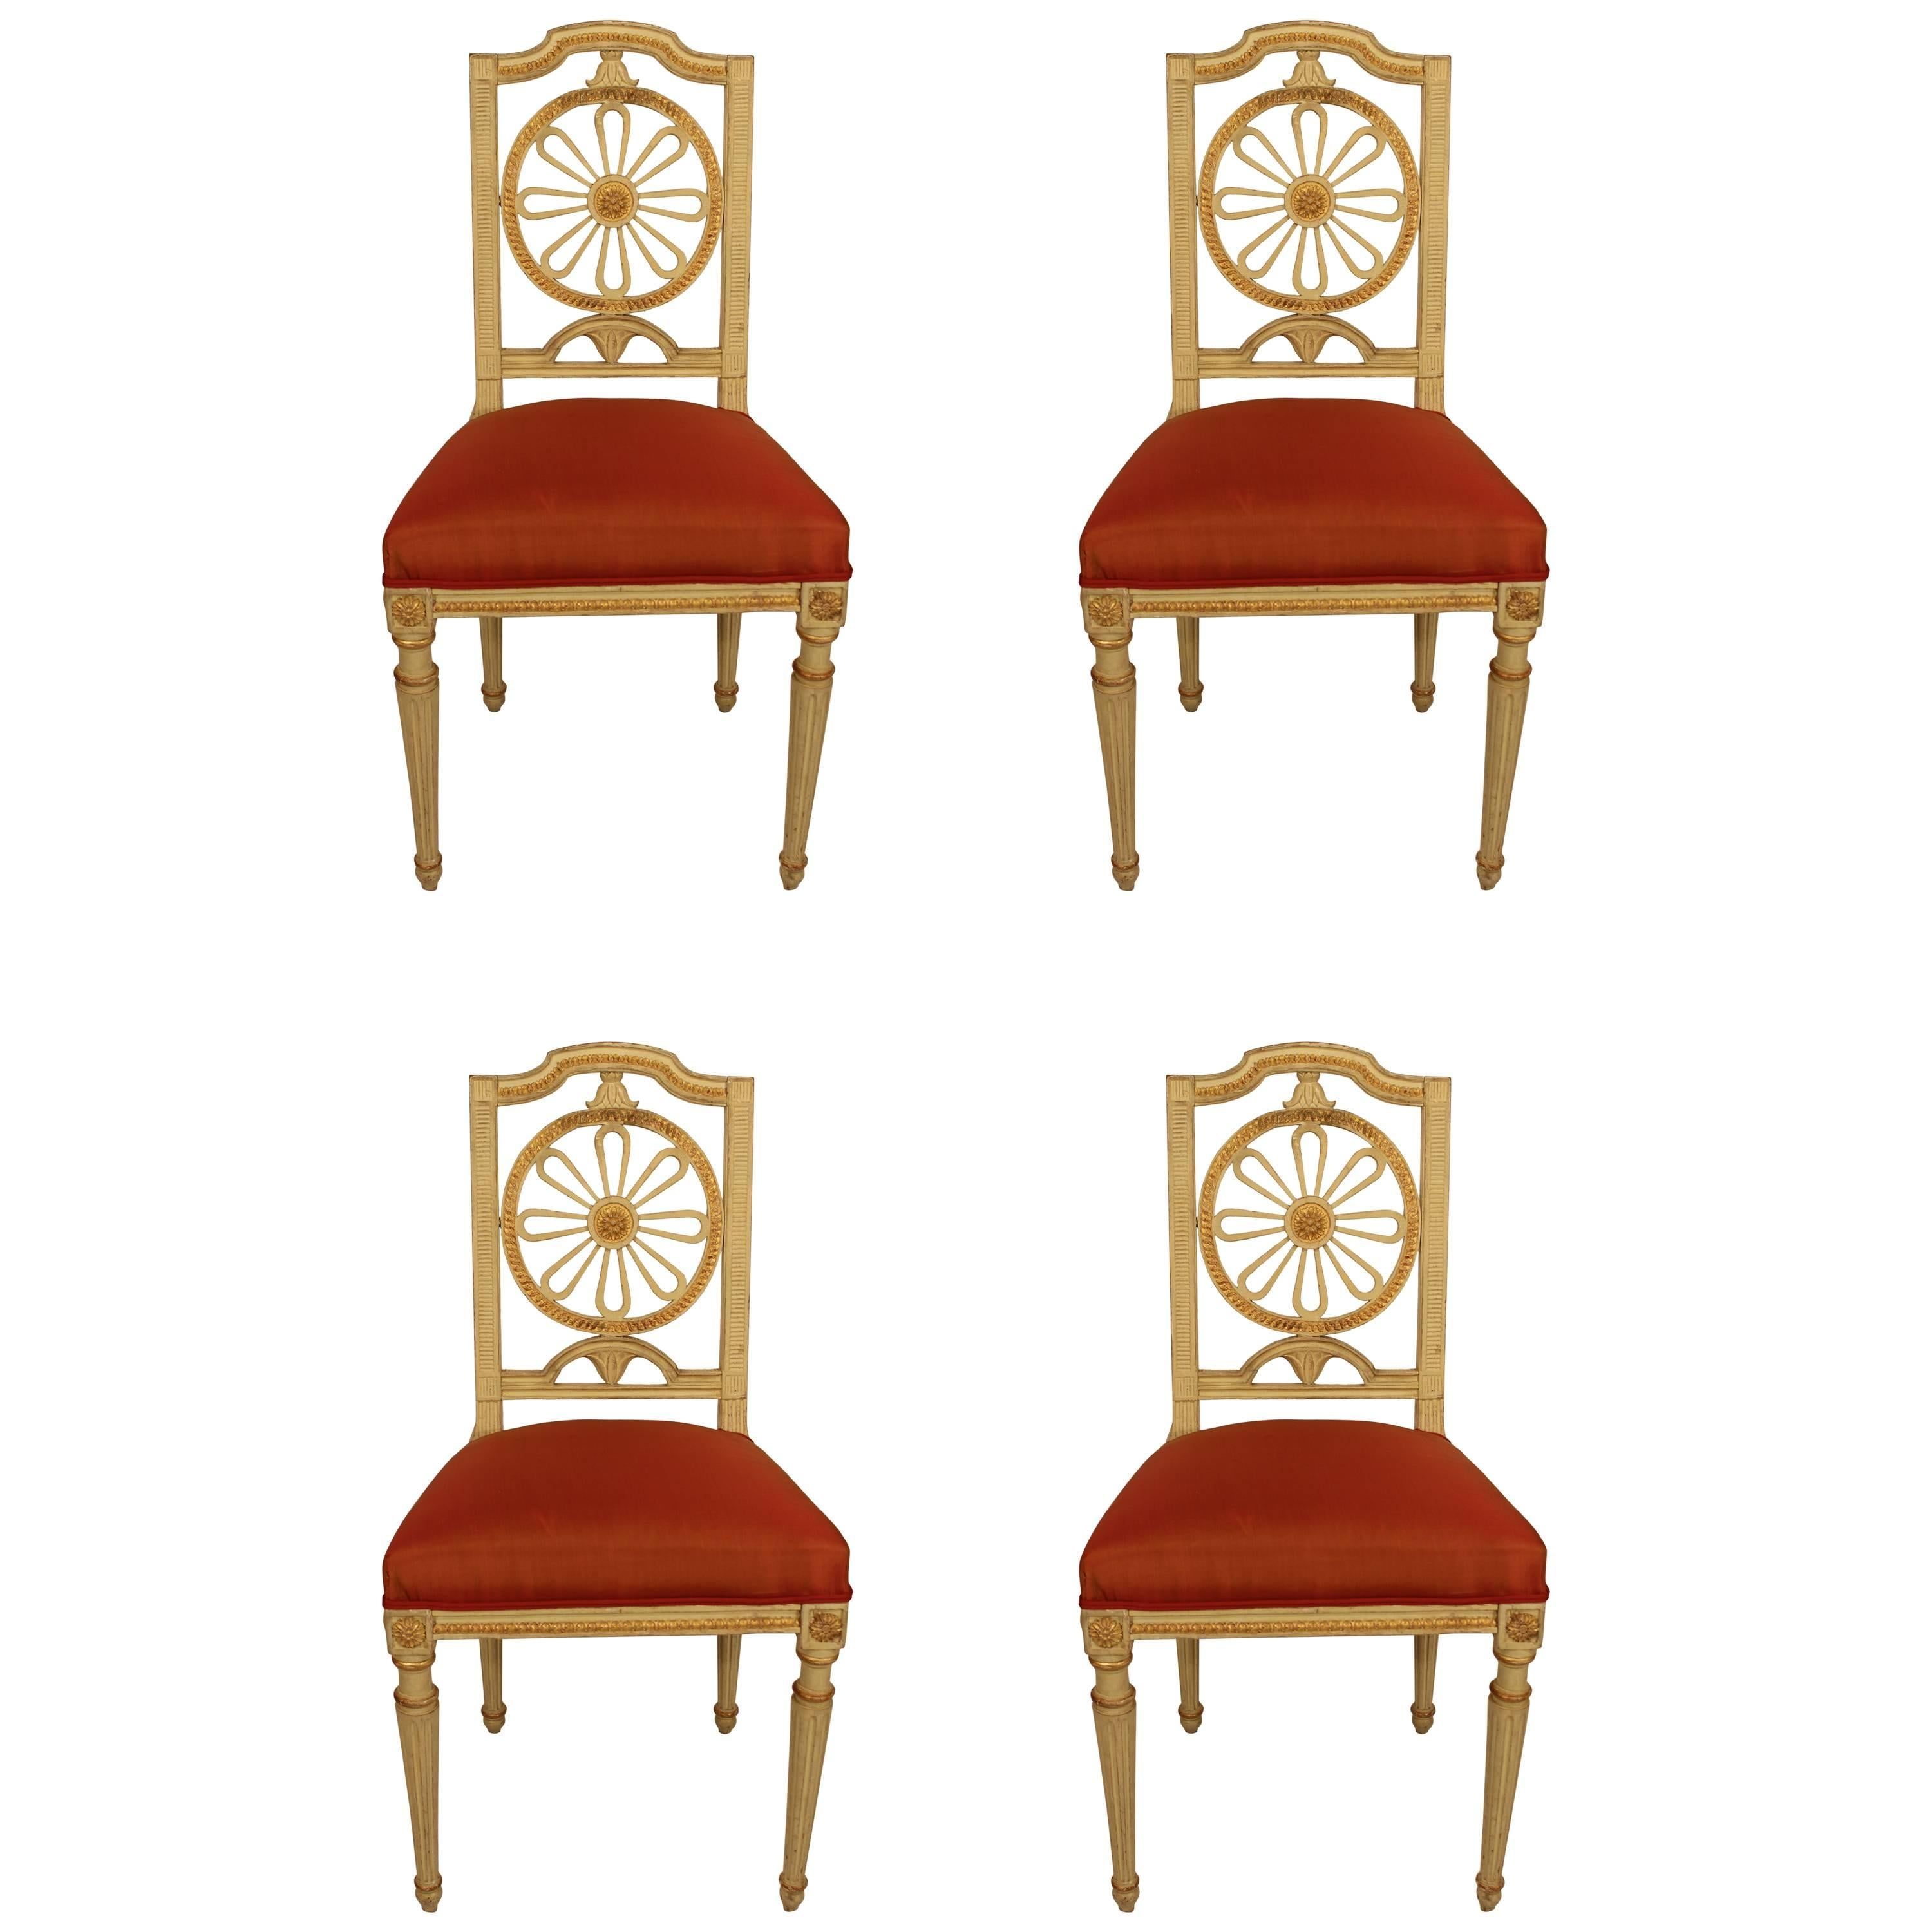 Set of Four Gustavian Chairs, Sweden beginning of 19th century